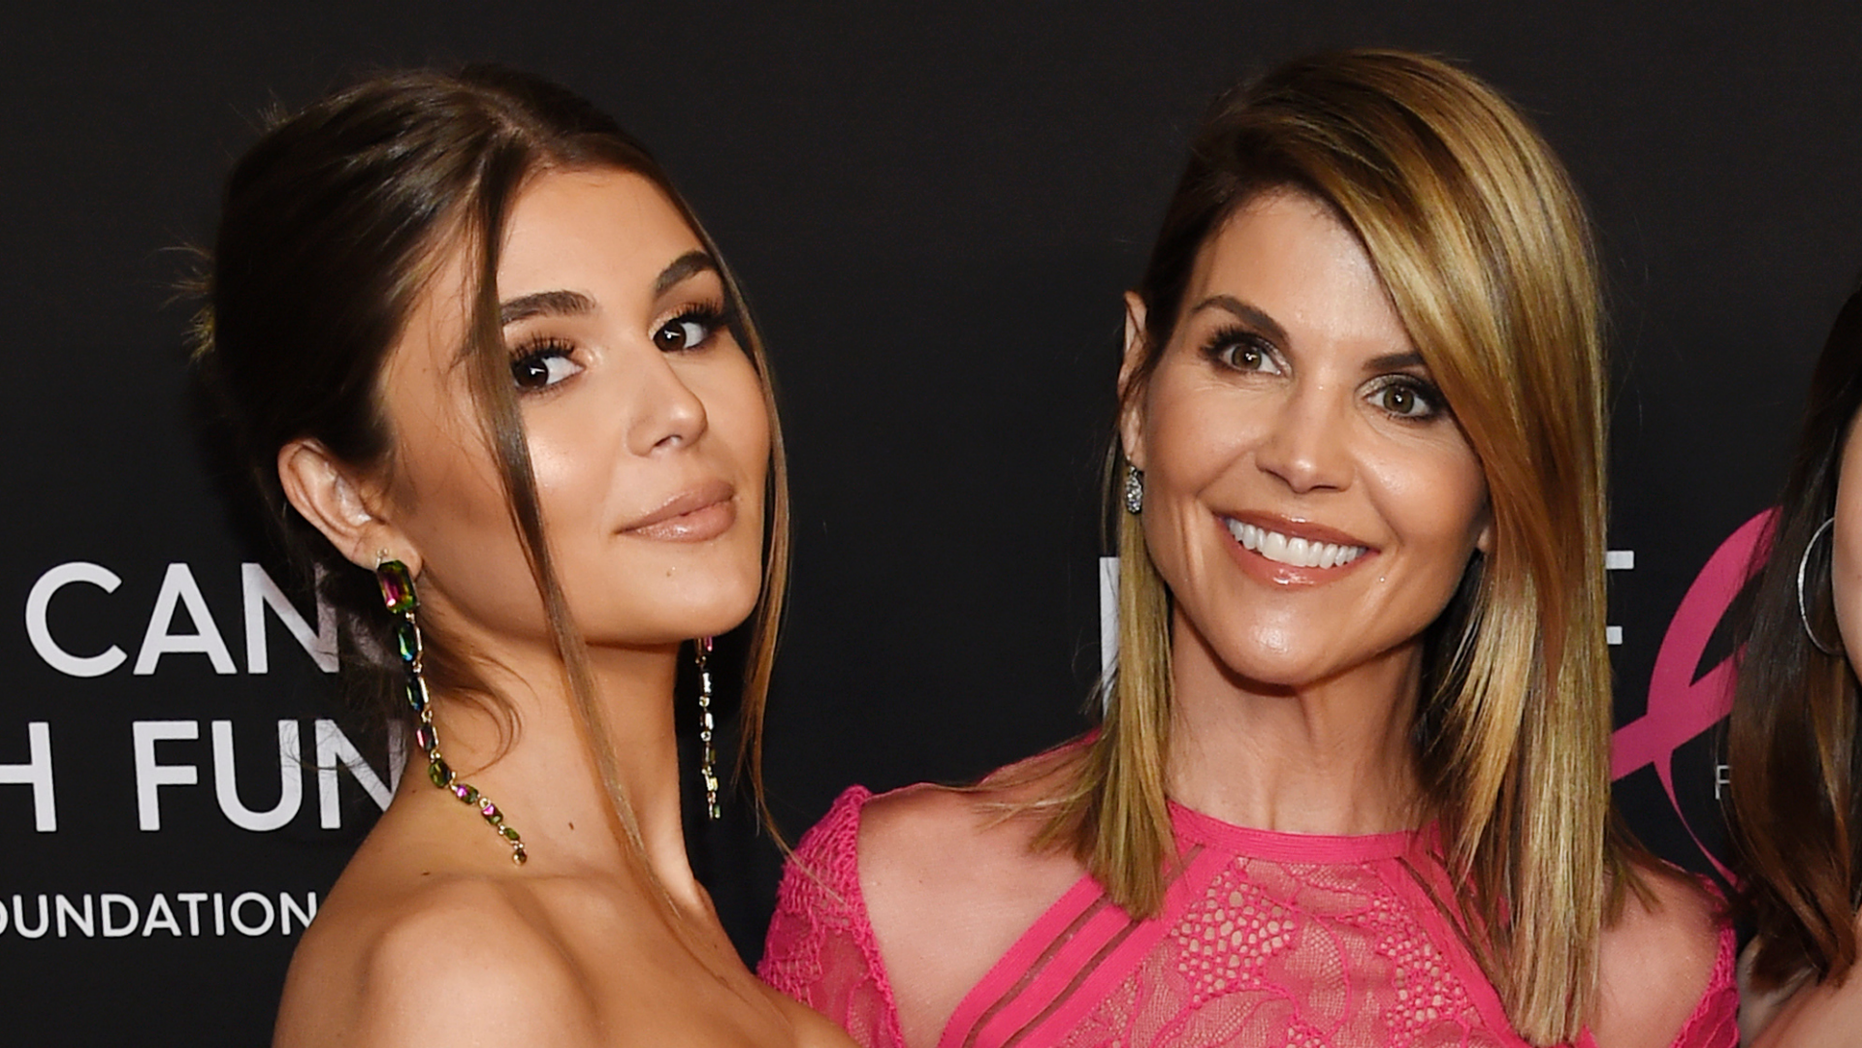 Westlake Legal Group 4ef39c88-ContentBroker_contentid-bf848370f9ce4f30a85ed36a1a5466a7 Lori Loughlin's daughter Olivia Jade moves out of family's Bel-Air home: reports fox-news/us/us-regions/west/california fox-news/topic/college-admissions-scandal fox-news/person/olivia-jade fox-news/person/mossimo-giannulli fox-news/person/lori-loughlin fox-news/entertainment/celebrity-news fox news fnc/us fnc Danielle Wallace article 9377e41d-bed3-57f3-8f6f-7ed8e6ef9244